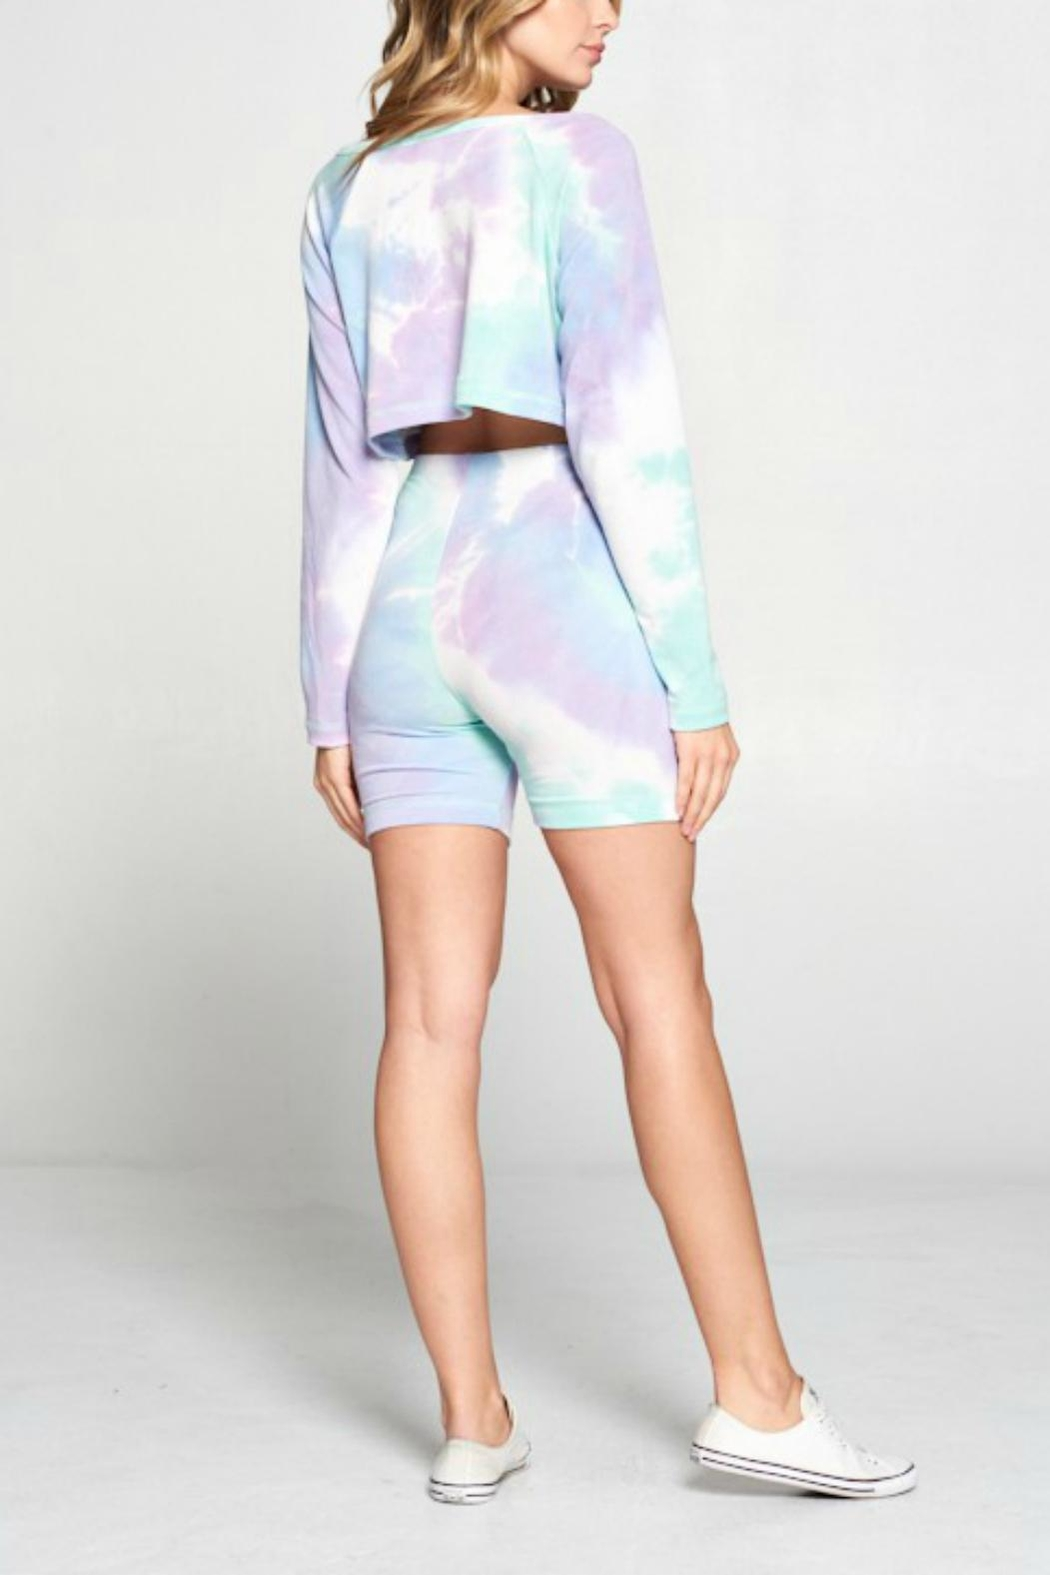 Pretty Little Things Tie Dye Shorts - Side Cropped Image